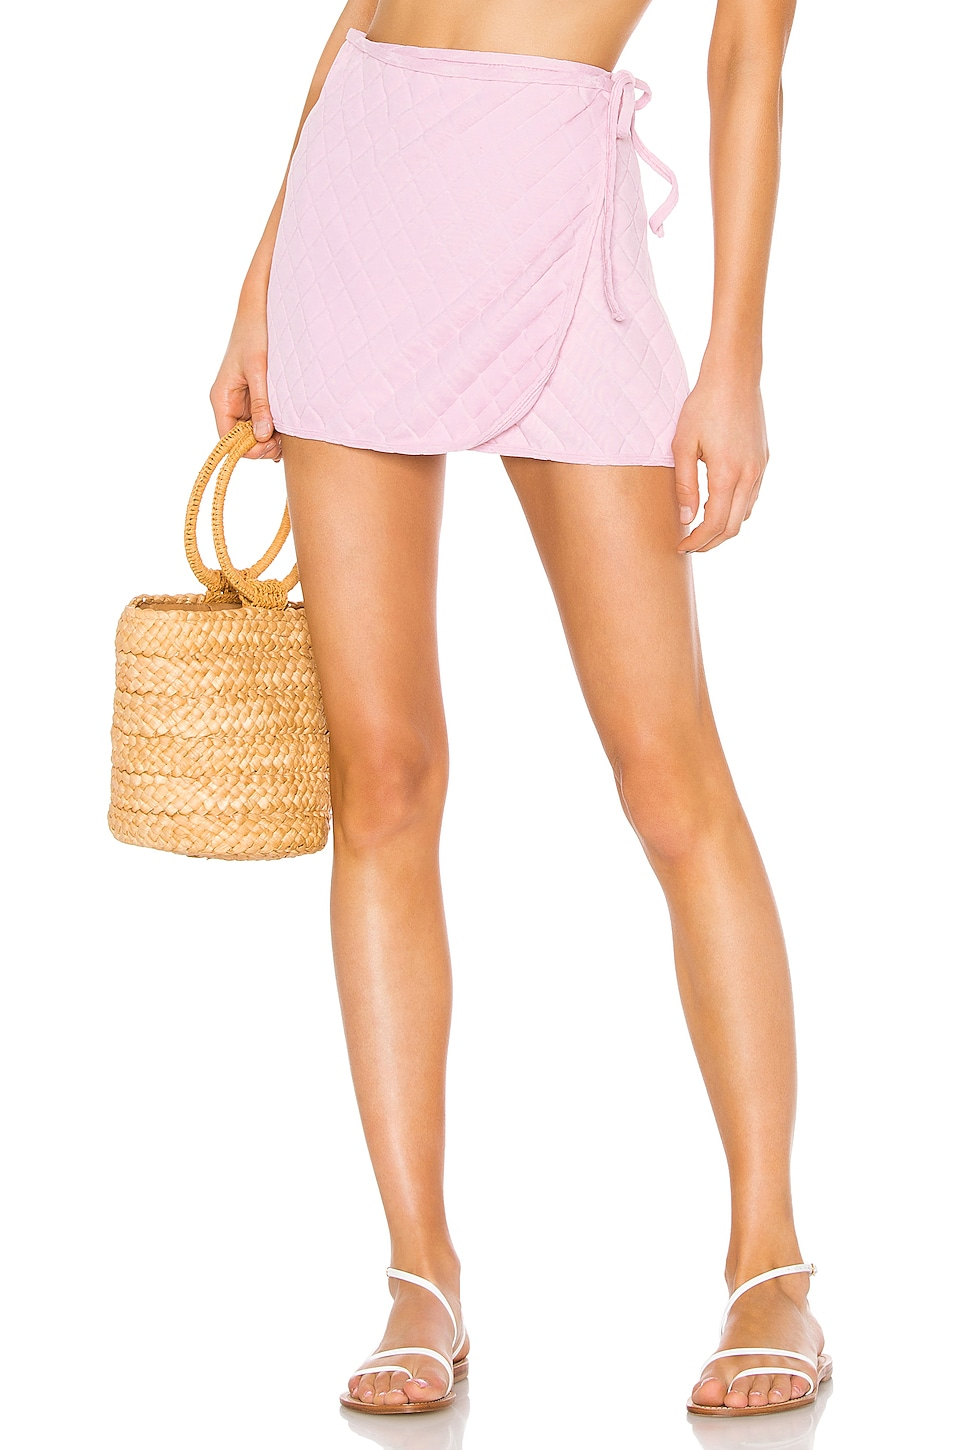 Solid & Striped Wrap Skirt in Light Pink Quilted